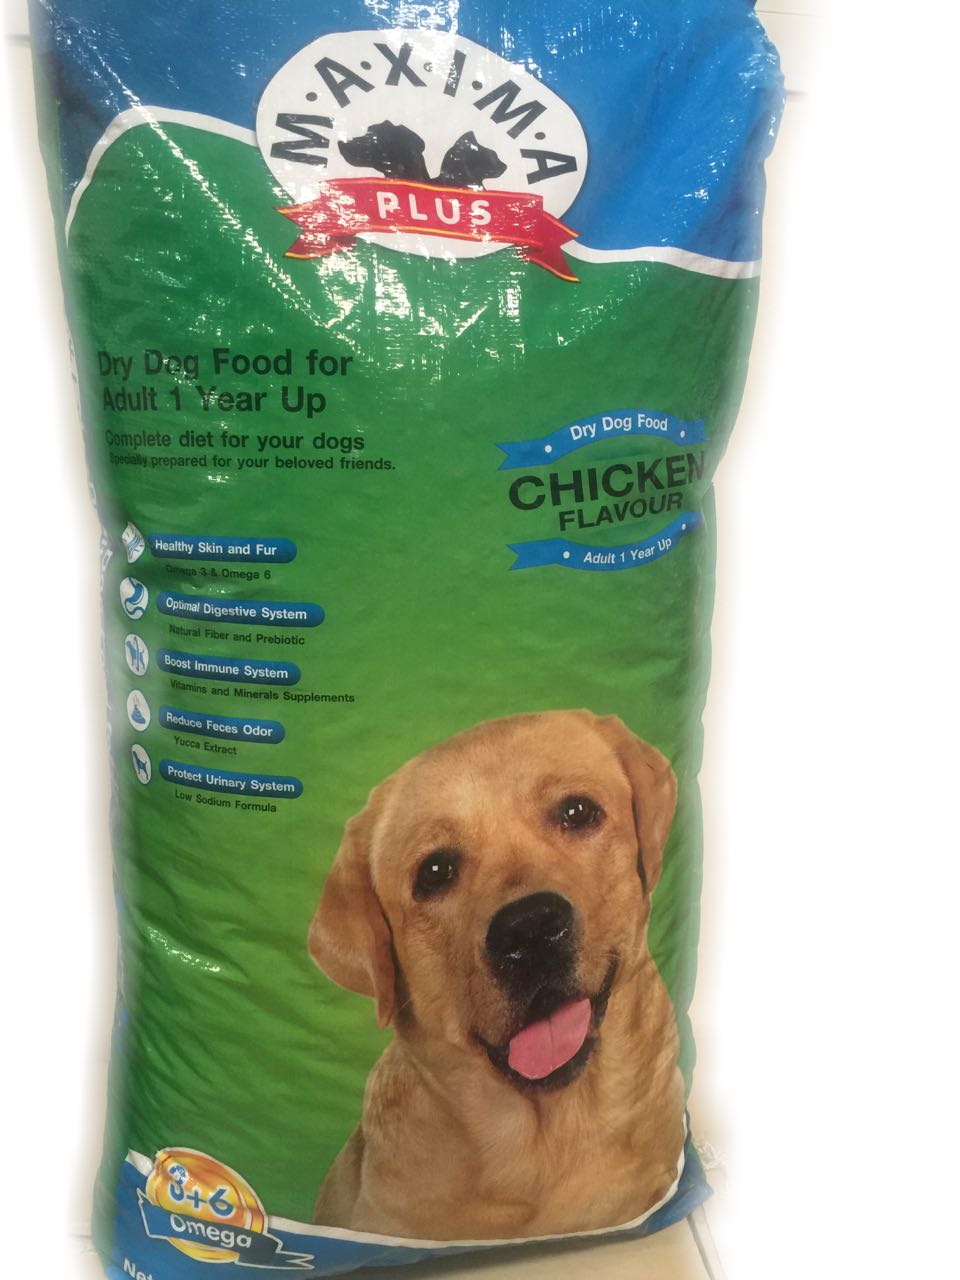 Maxima Plus Dog Food - Chicken Flavor